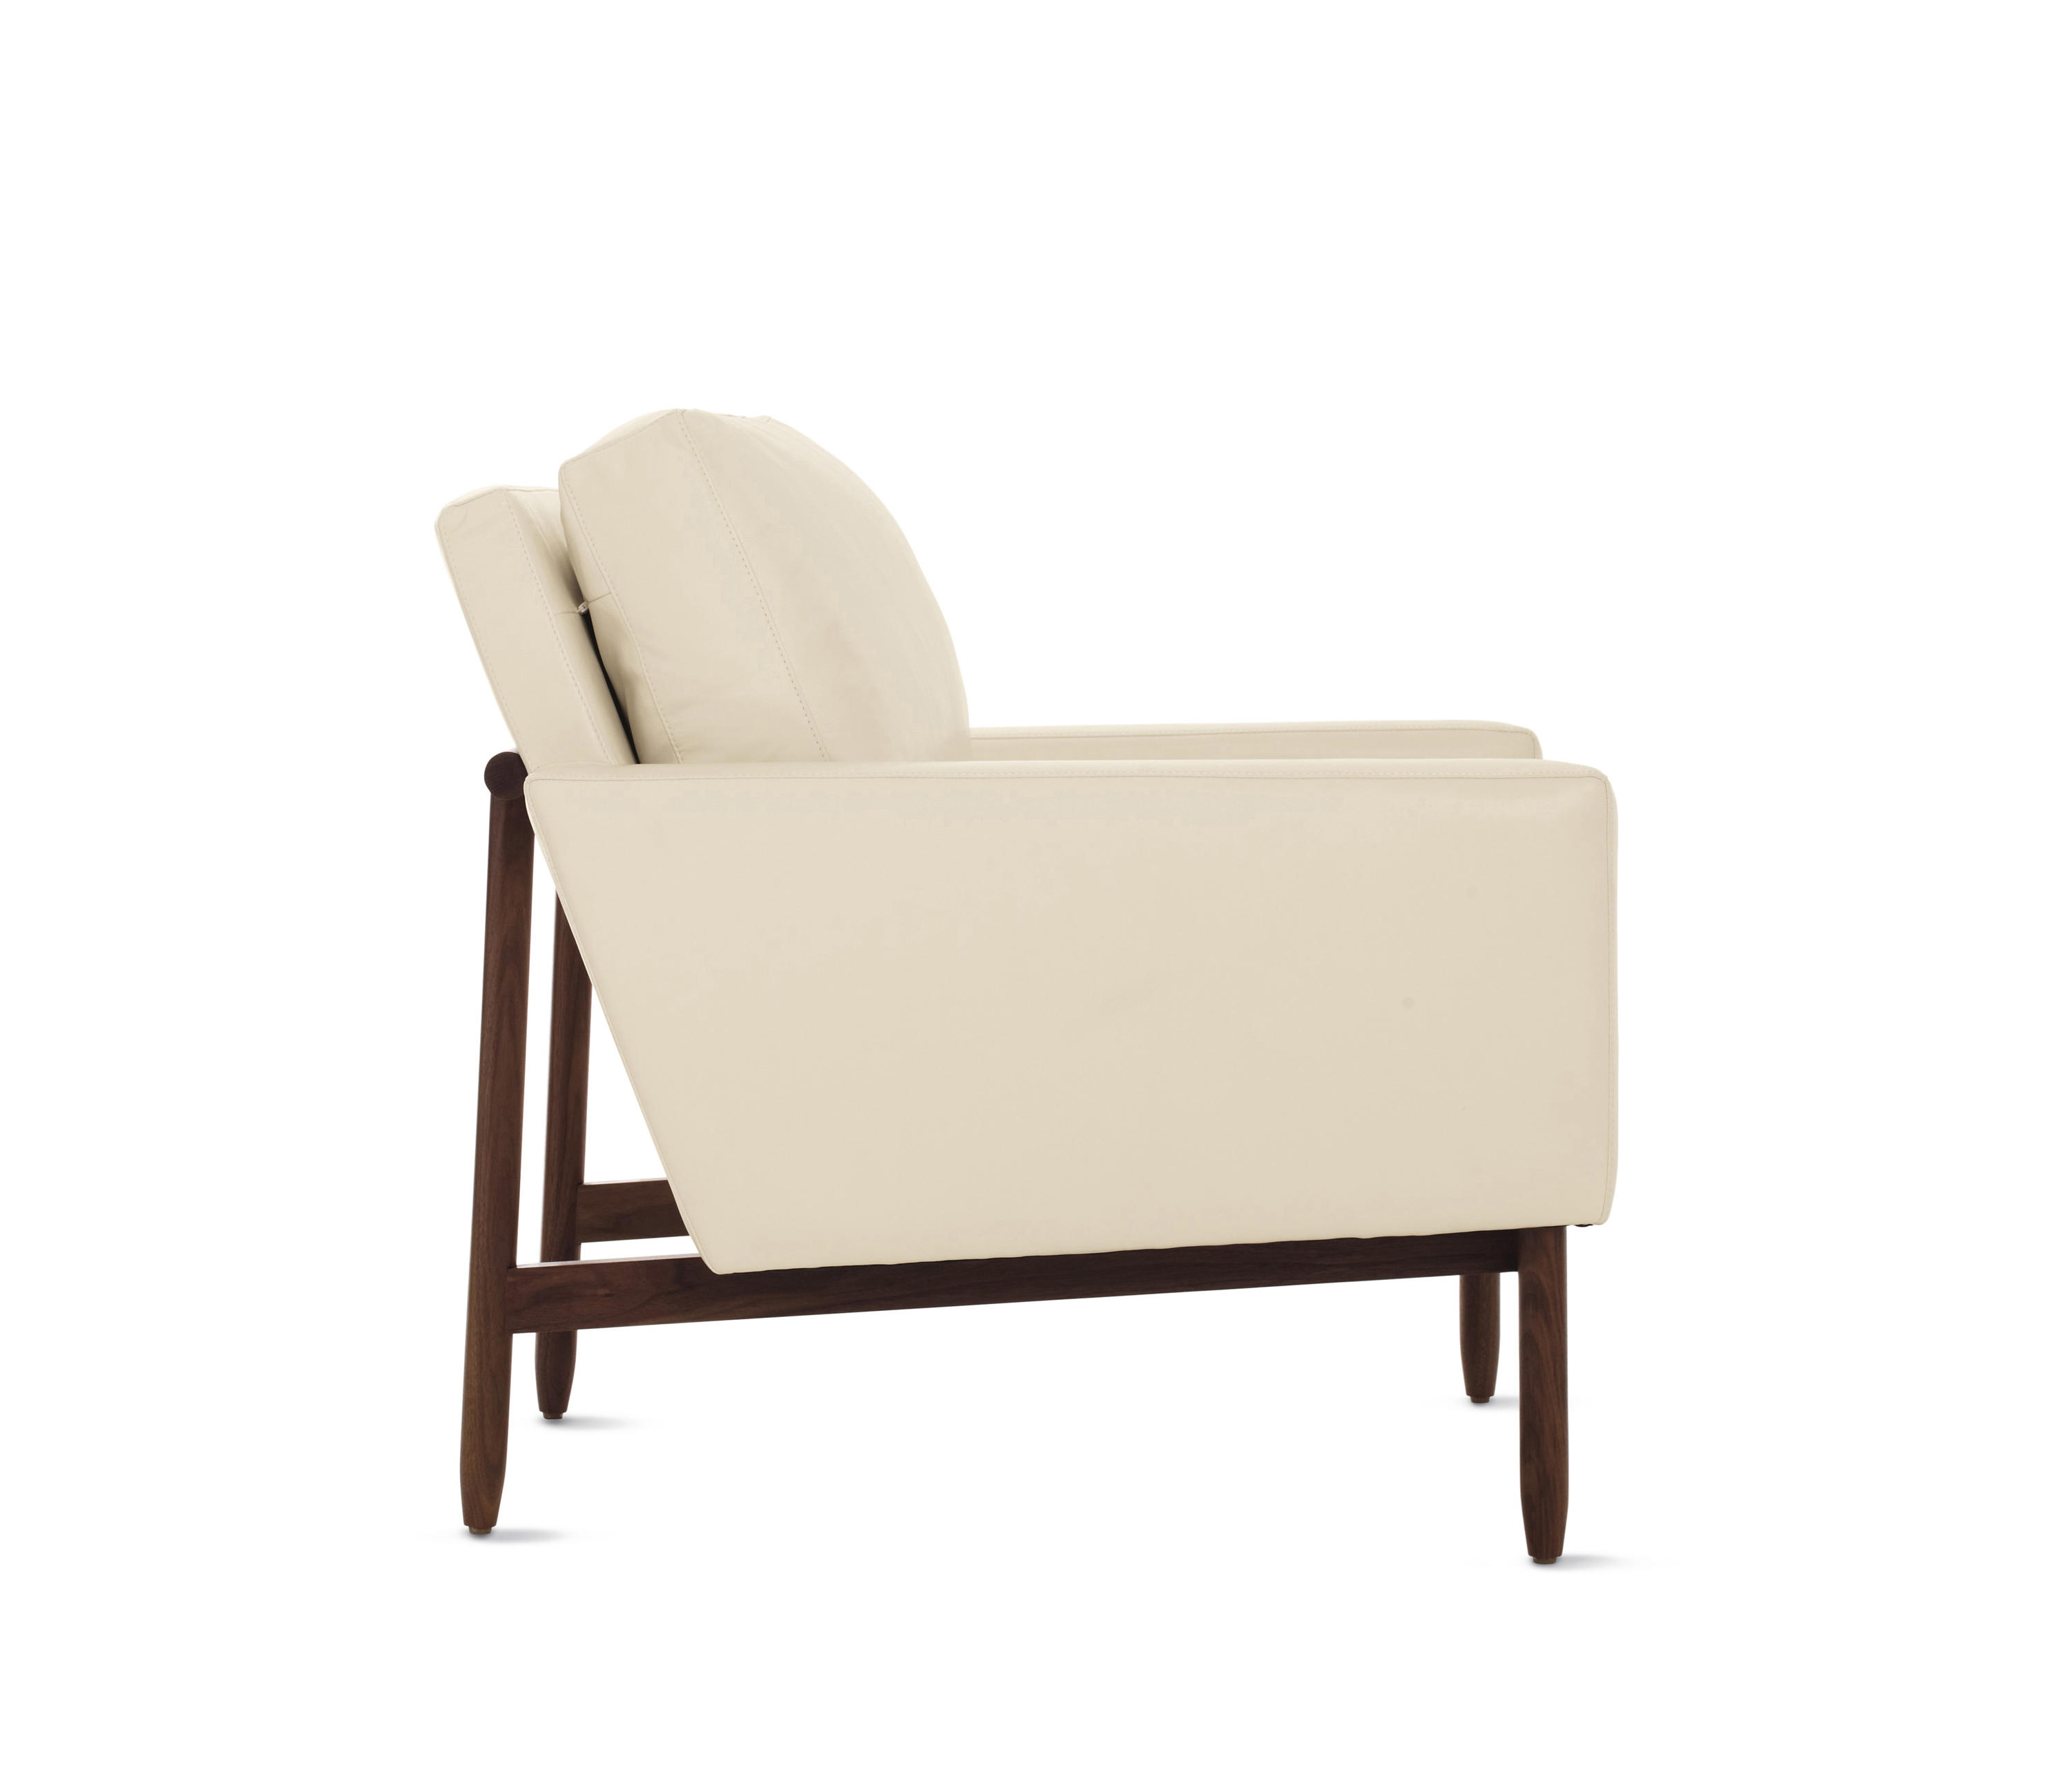 Raleigh Armchair In Leather By Design Within Reach Armchairs